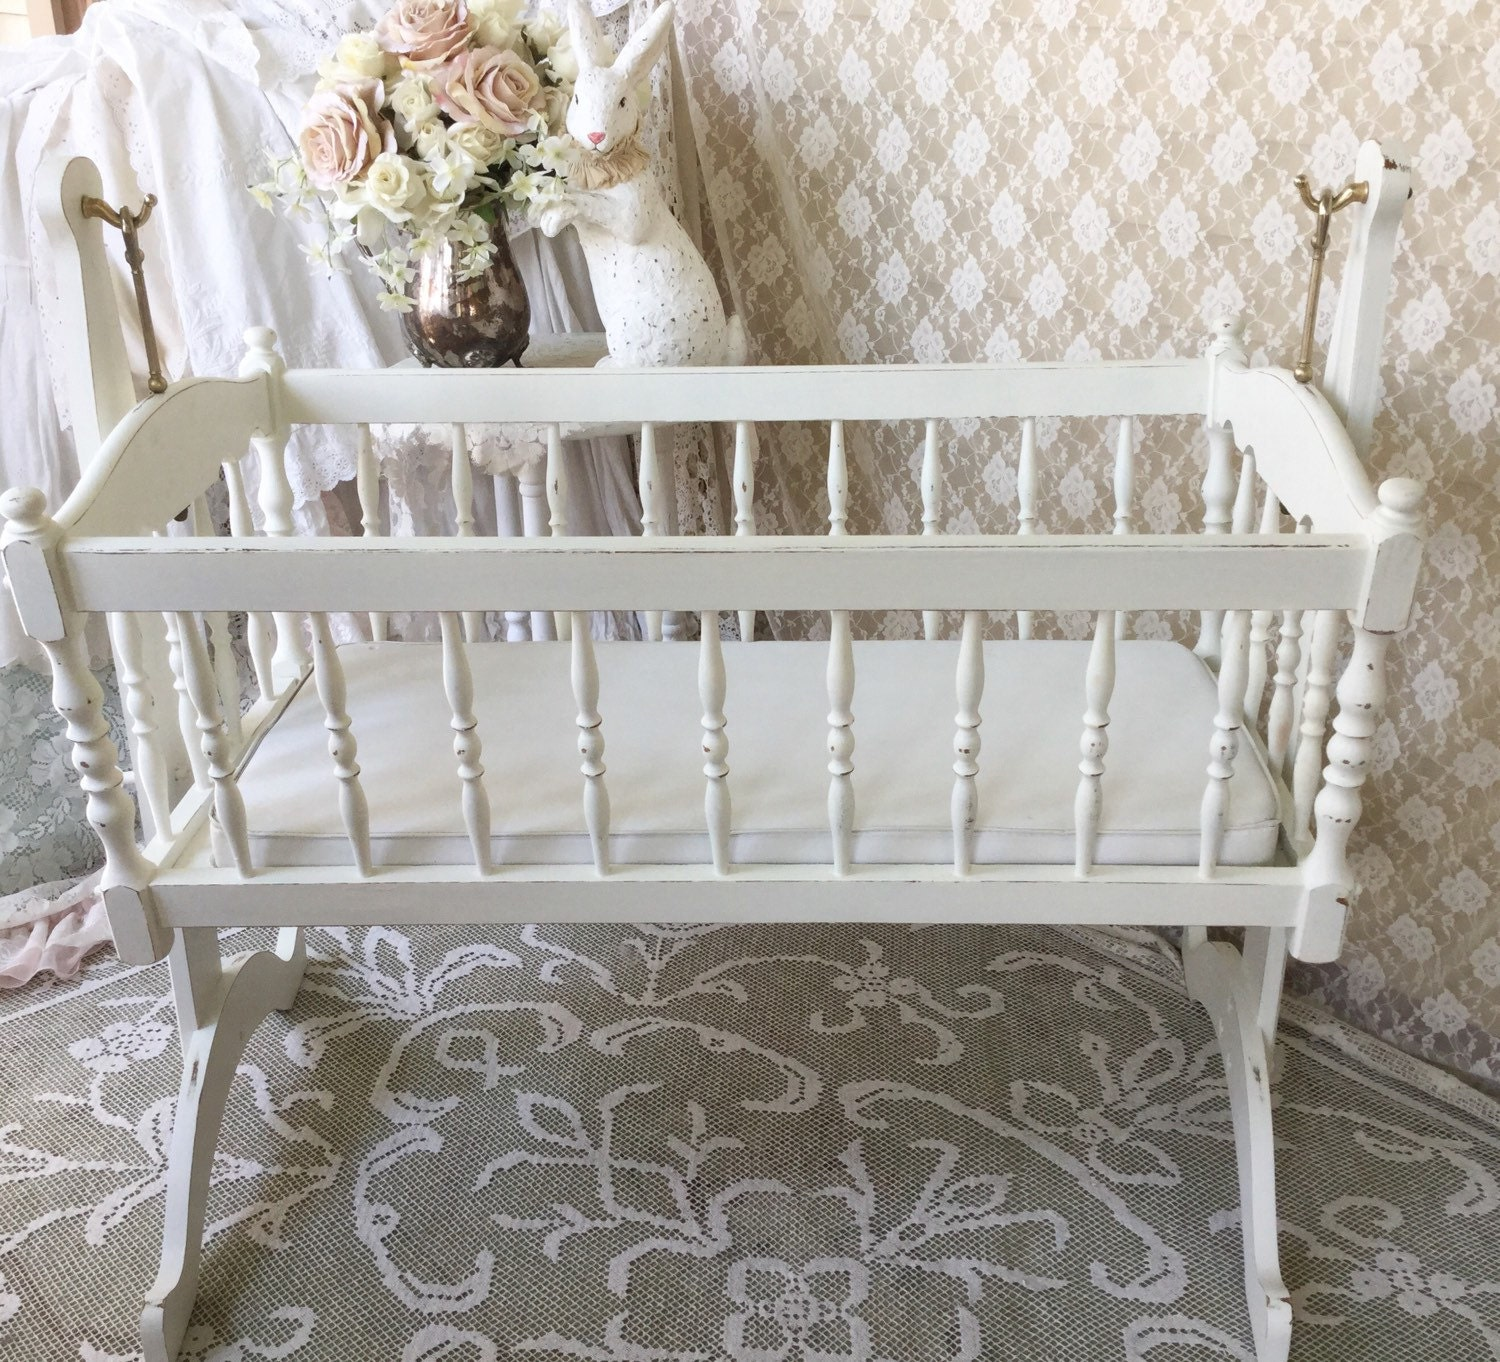 Baby bed vintage - Reserved Shabby White Vintage Baby Cradle Baby Bed Wooden Rocking Cradle Shabby Baby Nursery Baby Photo Prop Large Suspended Baby Cradle